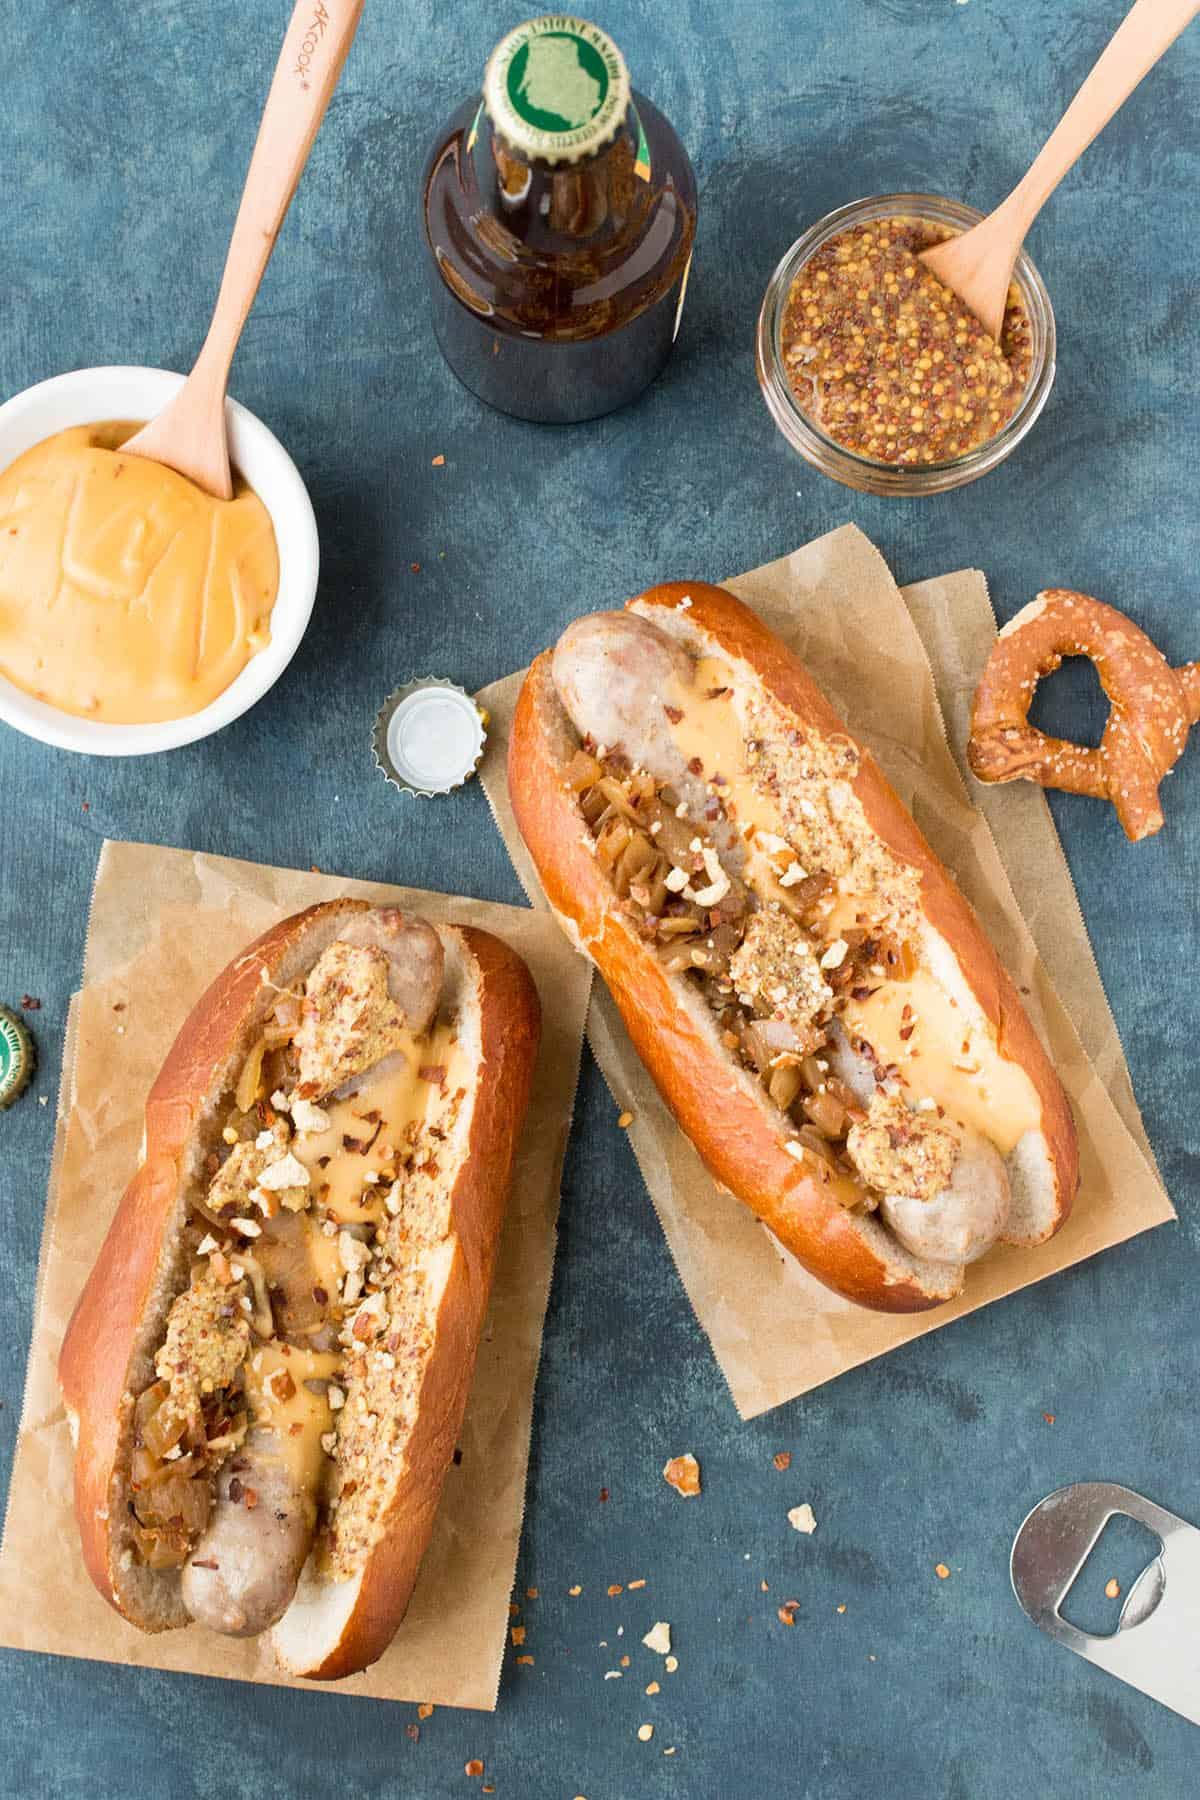 Grilled Beer Brats with Homemade Beer Cheese